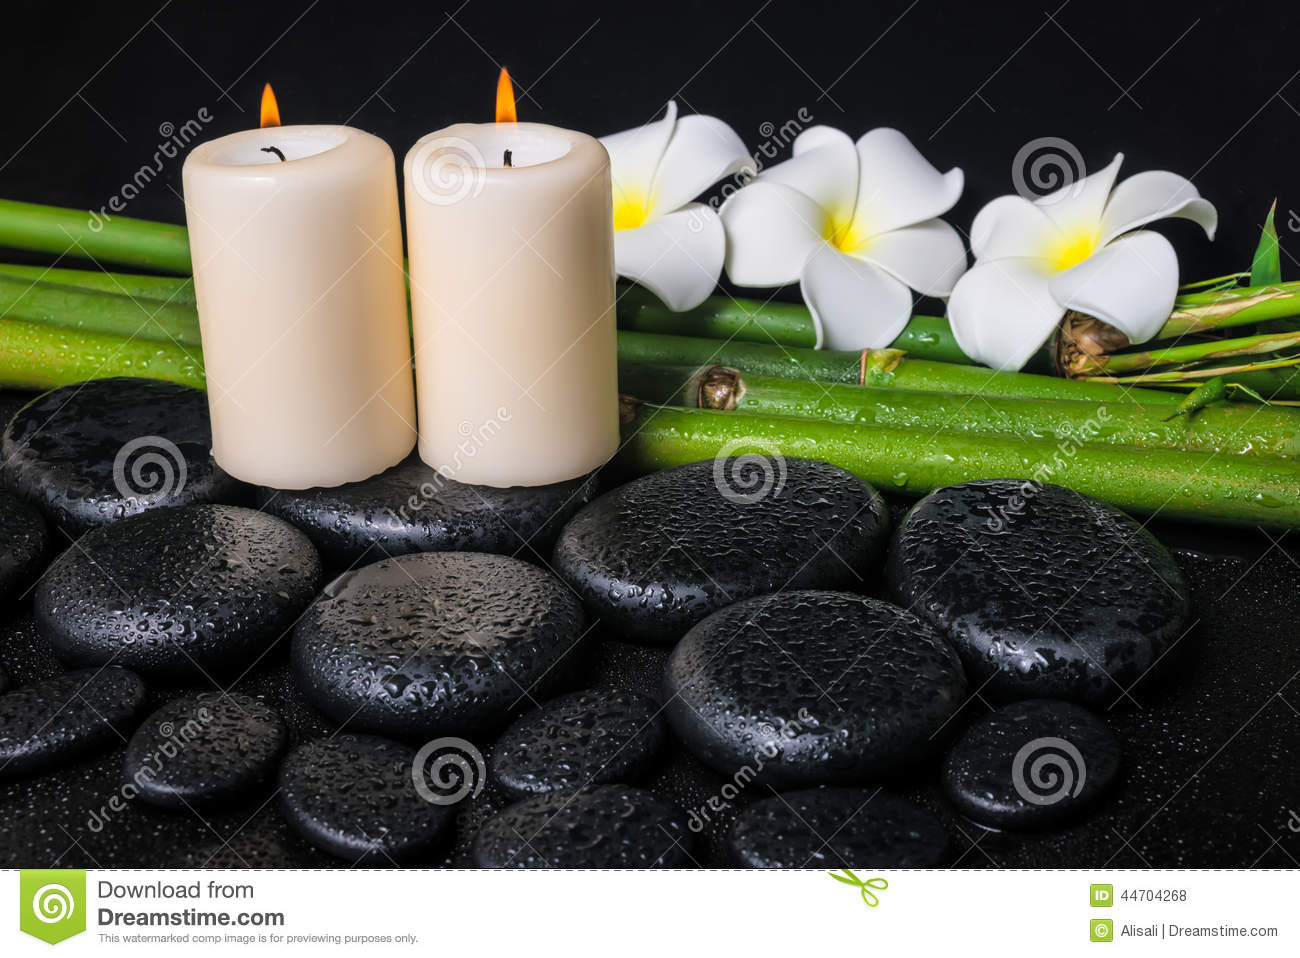 Spa concept of zen basalt stones, three white flower frangipani